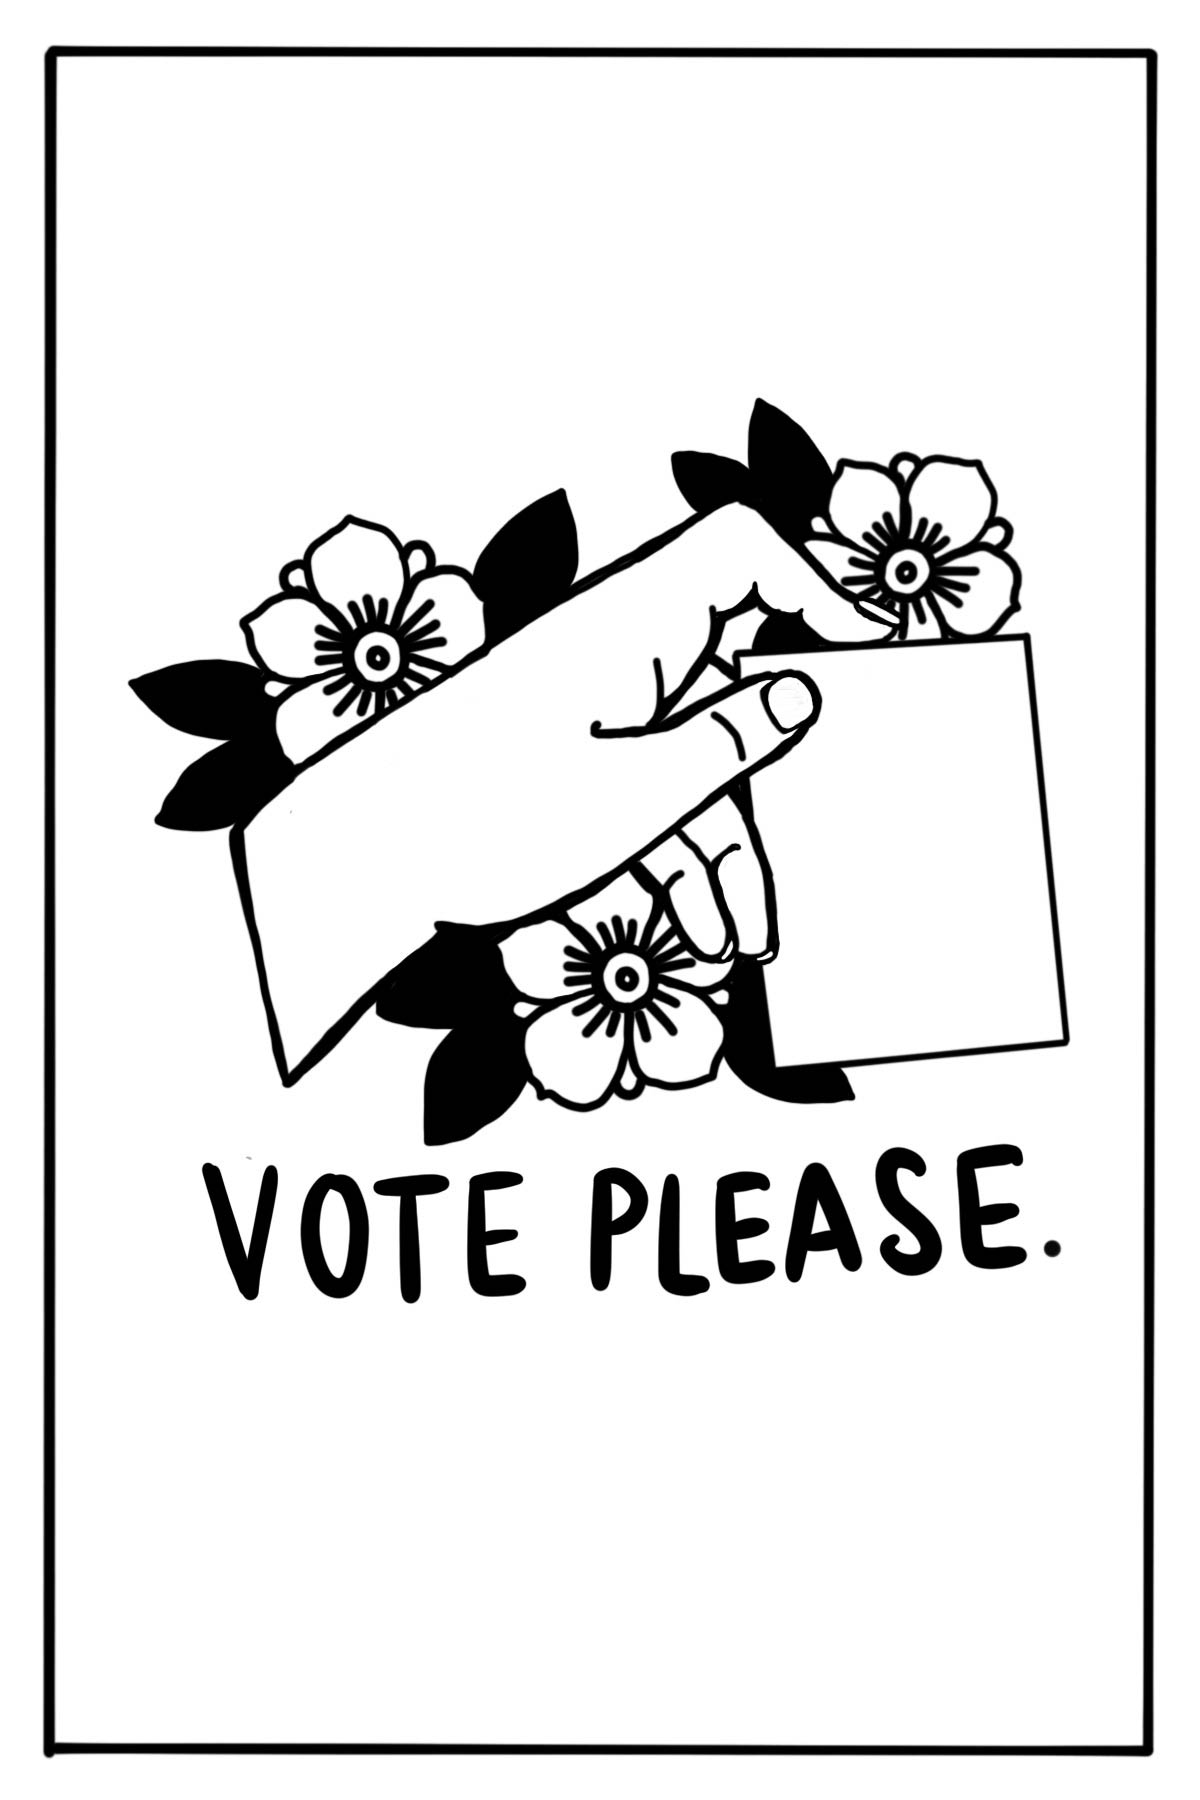 Illustration of a hand holding a card that says vote please